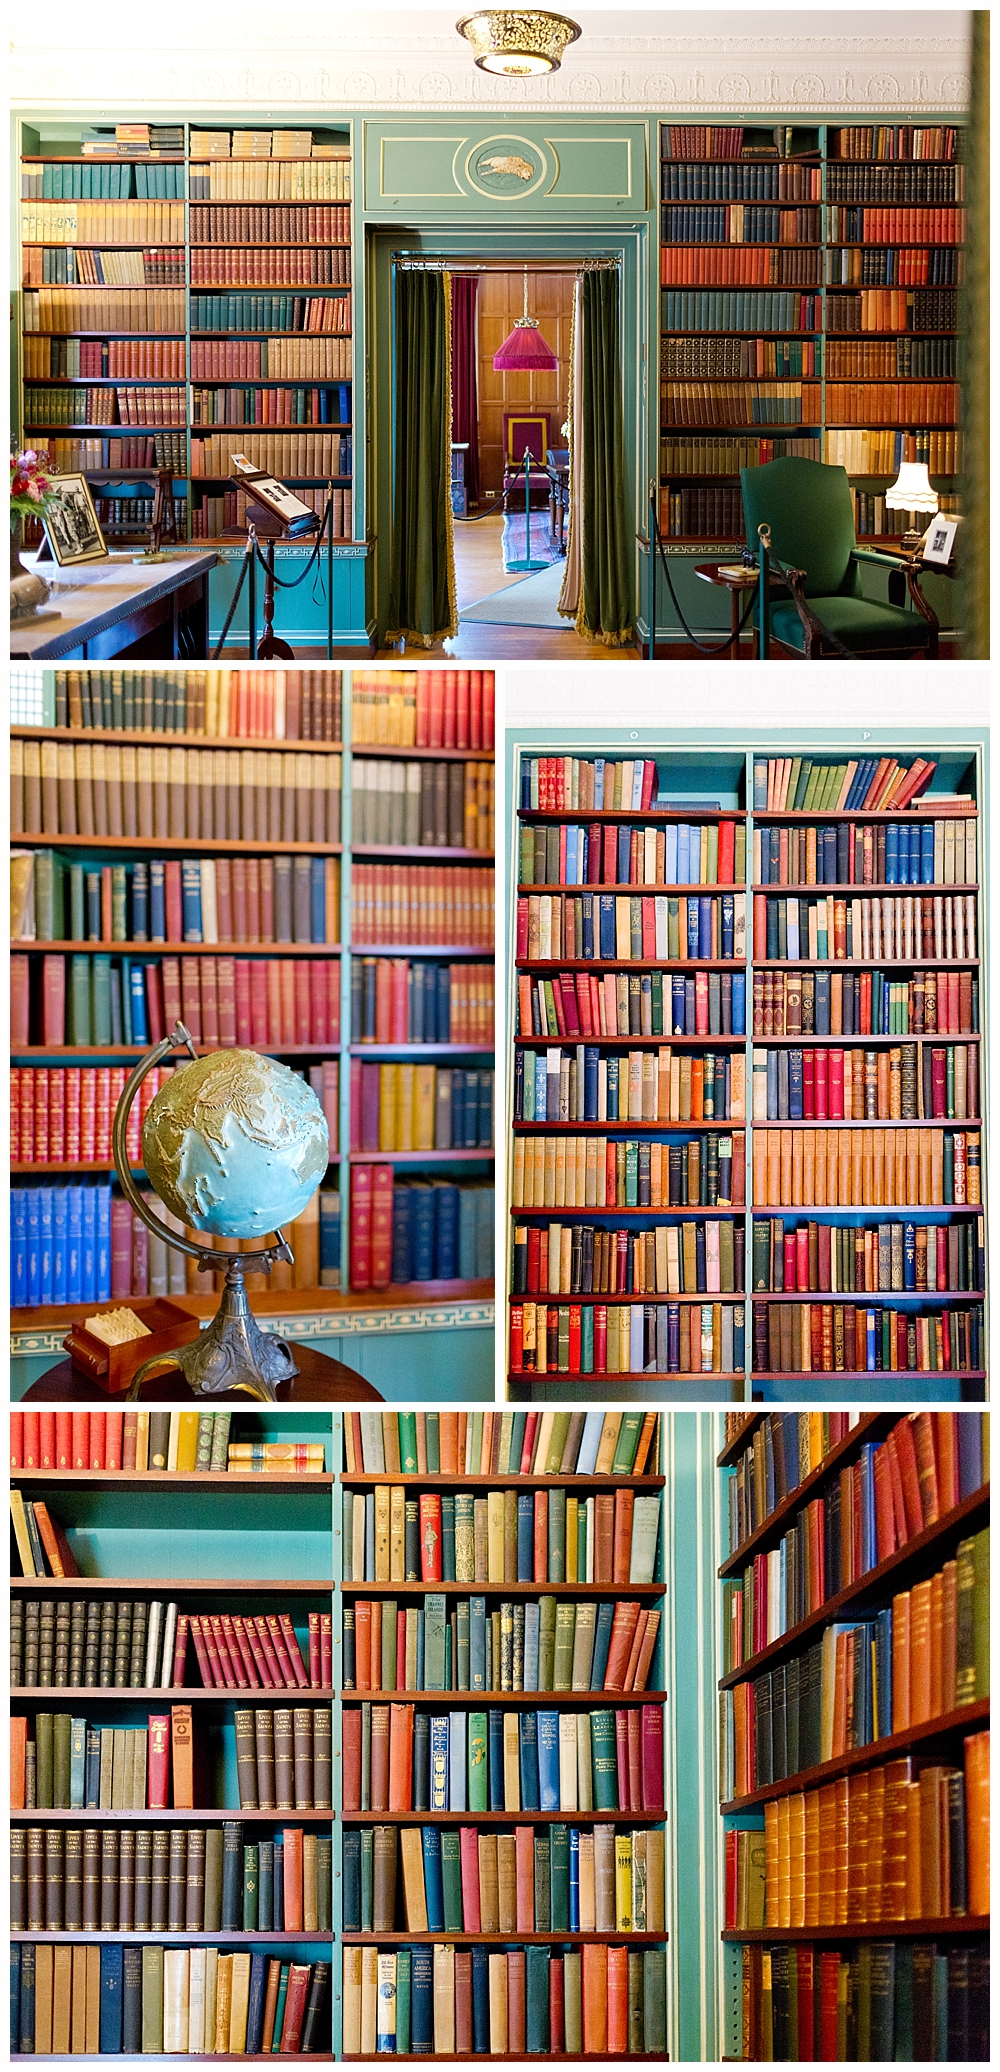 library at George Eastman mansion and Kodak museum